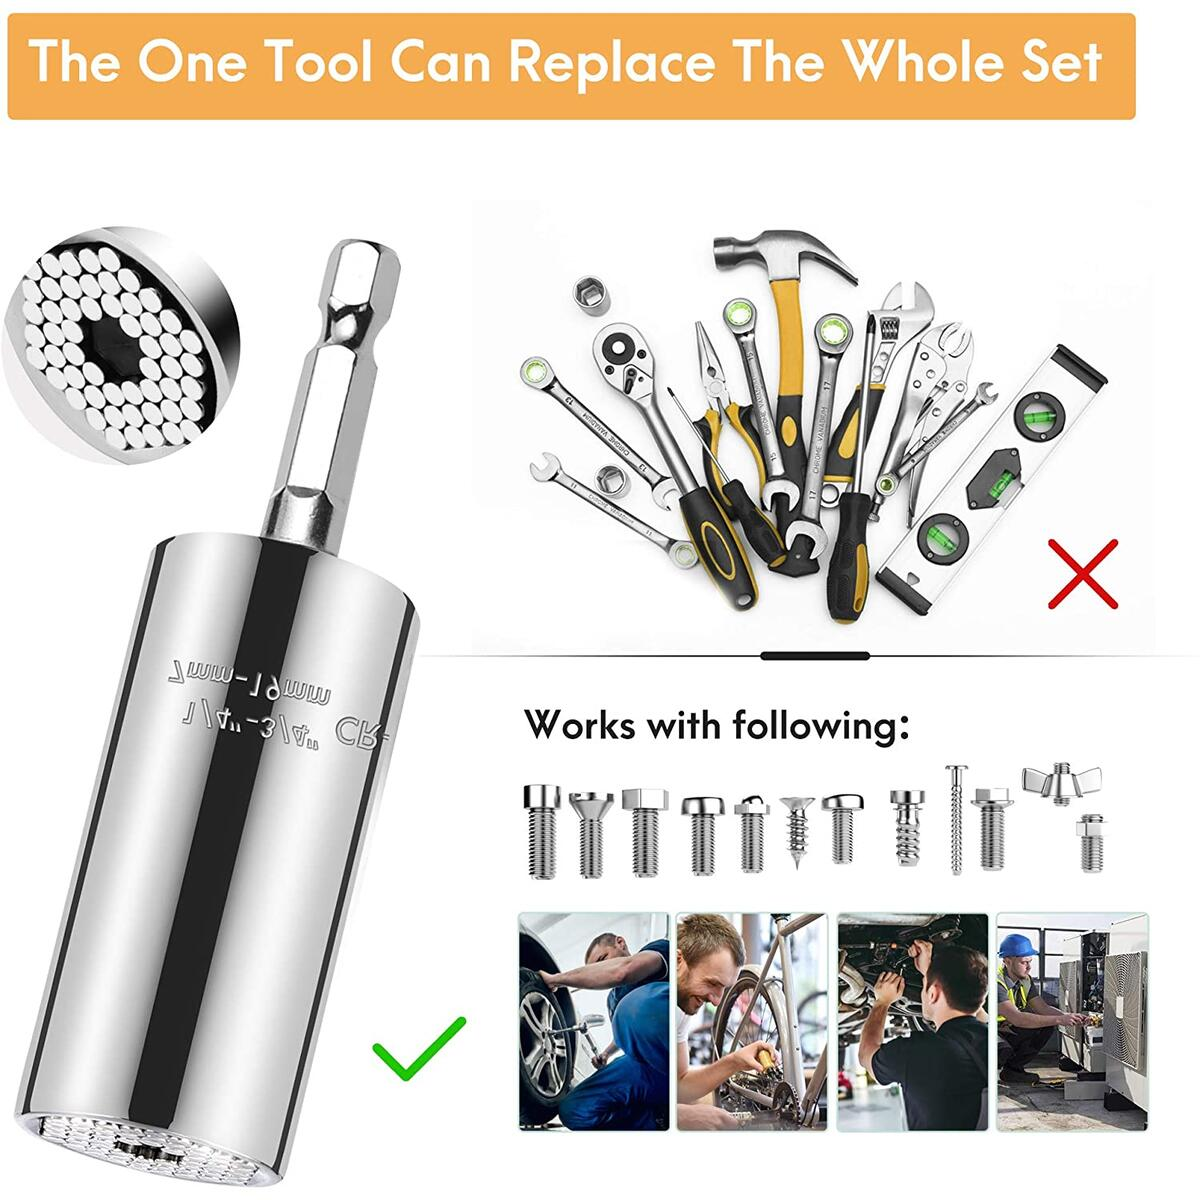 Universal Socket Tool Set (7-19mm) Ratchet Socket Wrench With Power Drill Adapter Unique Gadgets Multi-Function Handy DIY Tools Stocking Stuffer Gifts for Men/Husband/Father/Boyfriend/Women